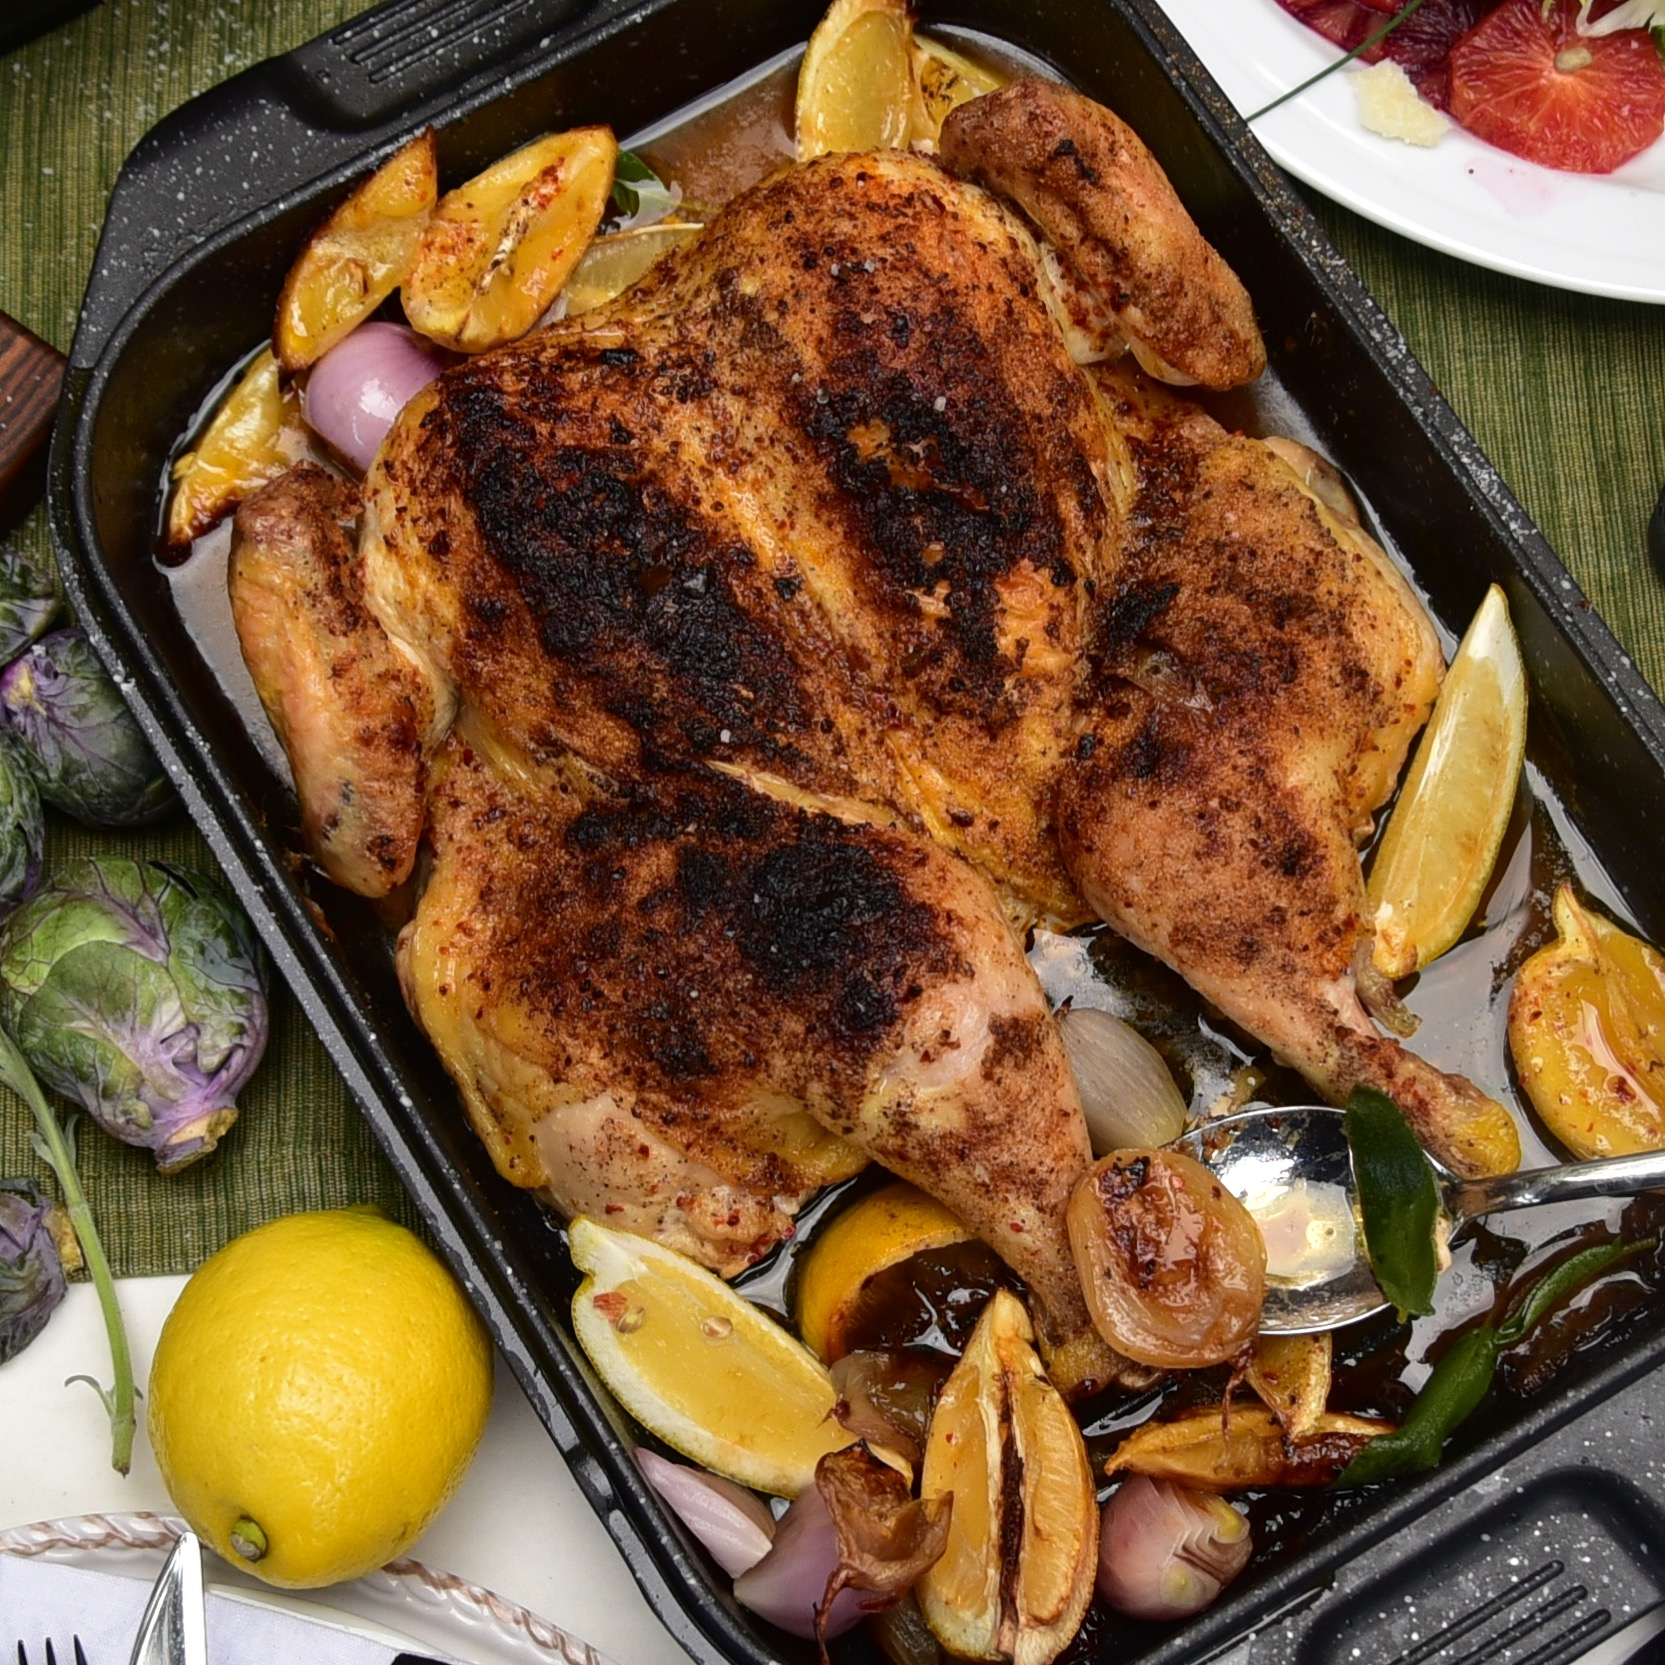 The top of the EuroCAST double roaster is a gorgeous roasting pan. Here, we see it being upstaged by an even more attractive spatchcocked chicken with its chorus of lemons and shallots that took the roasting ride alongside.